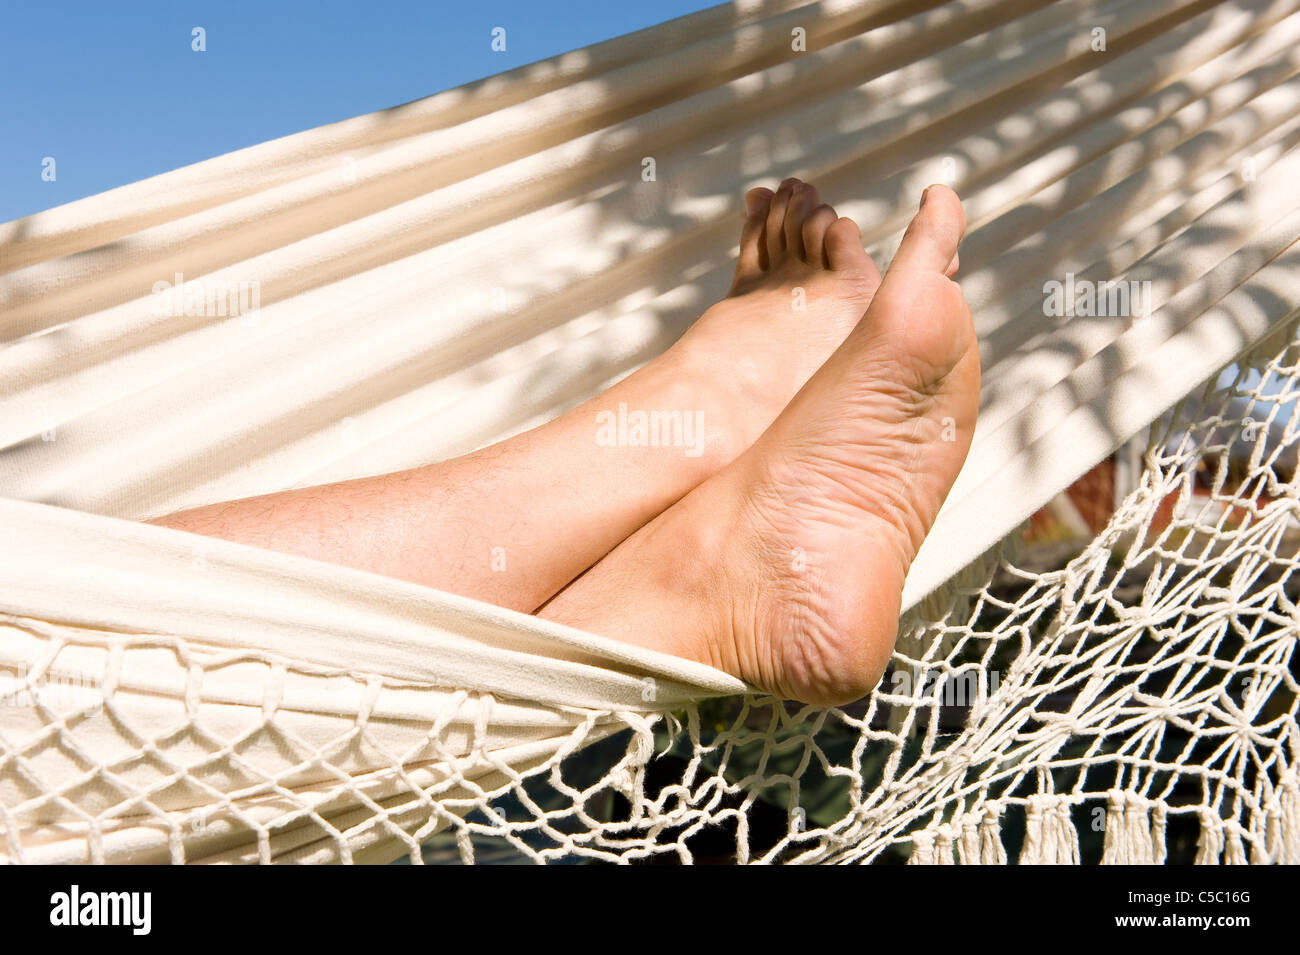 Close-up of bare feet resting in hammock on a sunny day - Stock Image